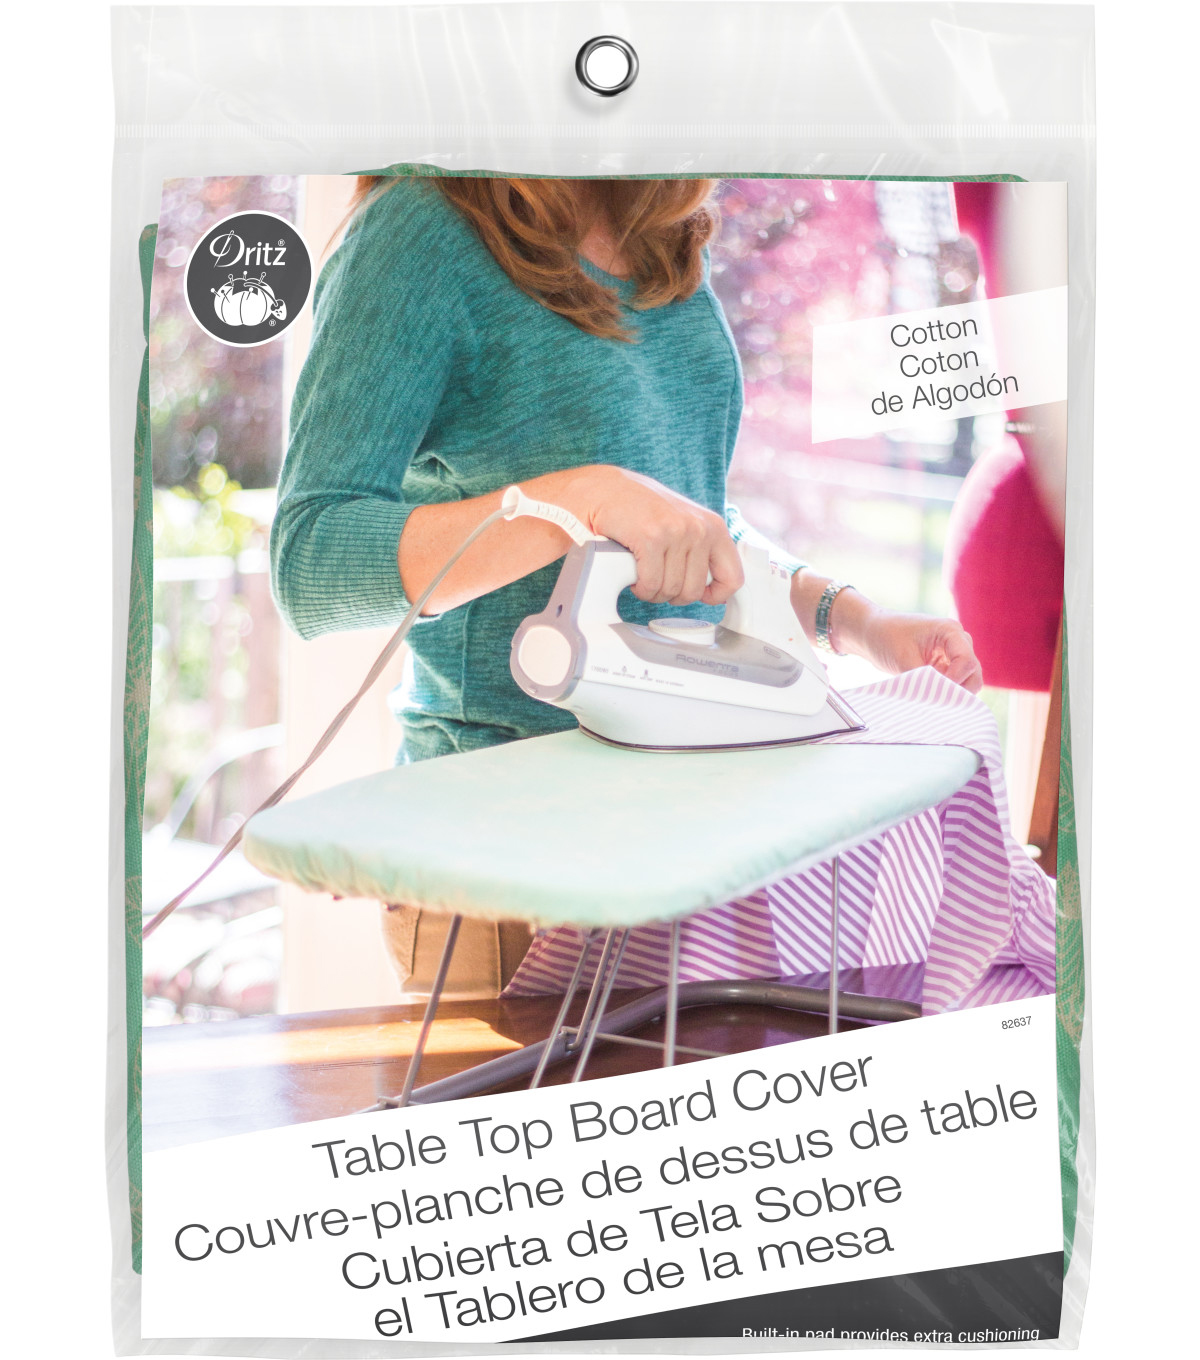 Dritz Ironing Board Cover Table Top Cover Cotton